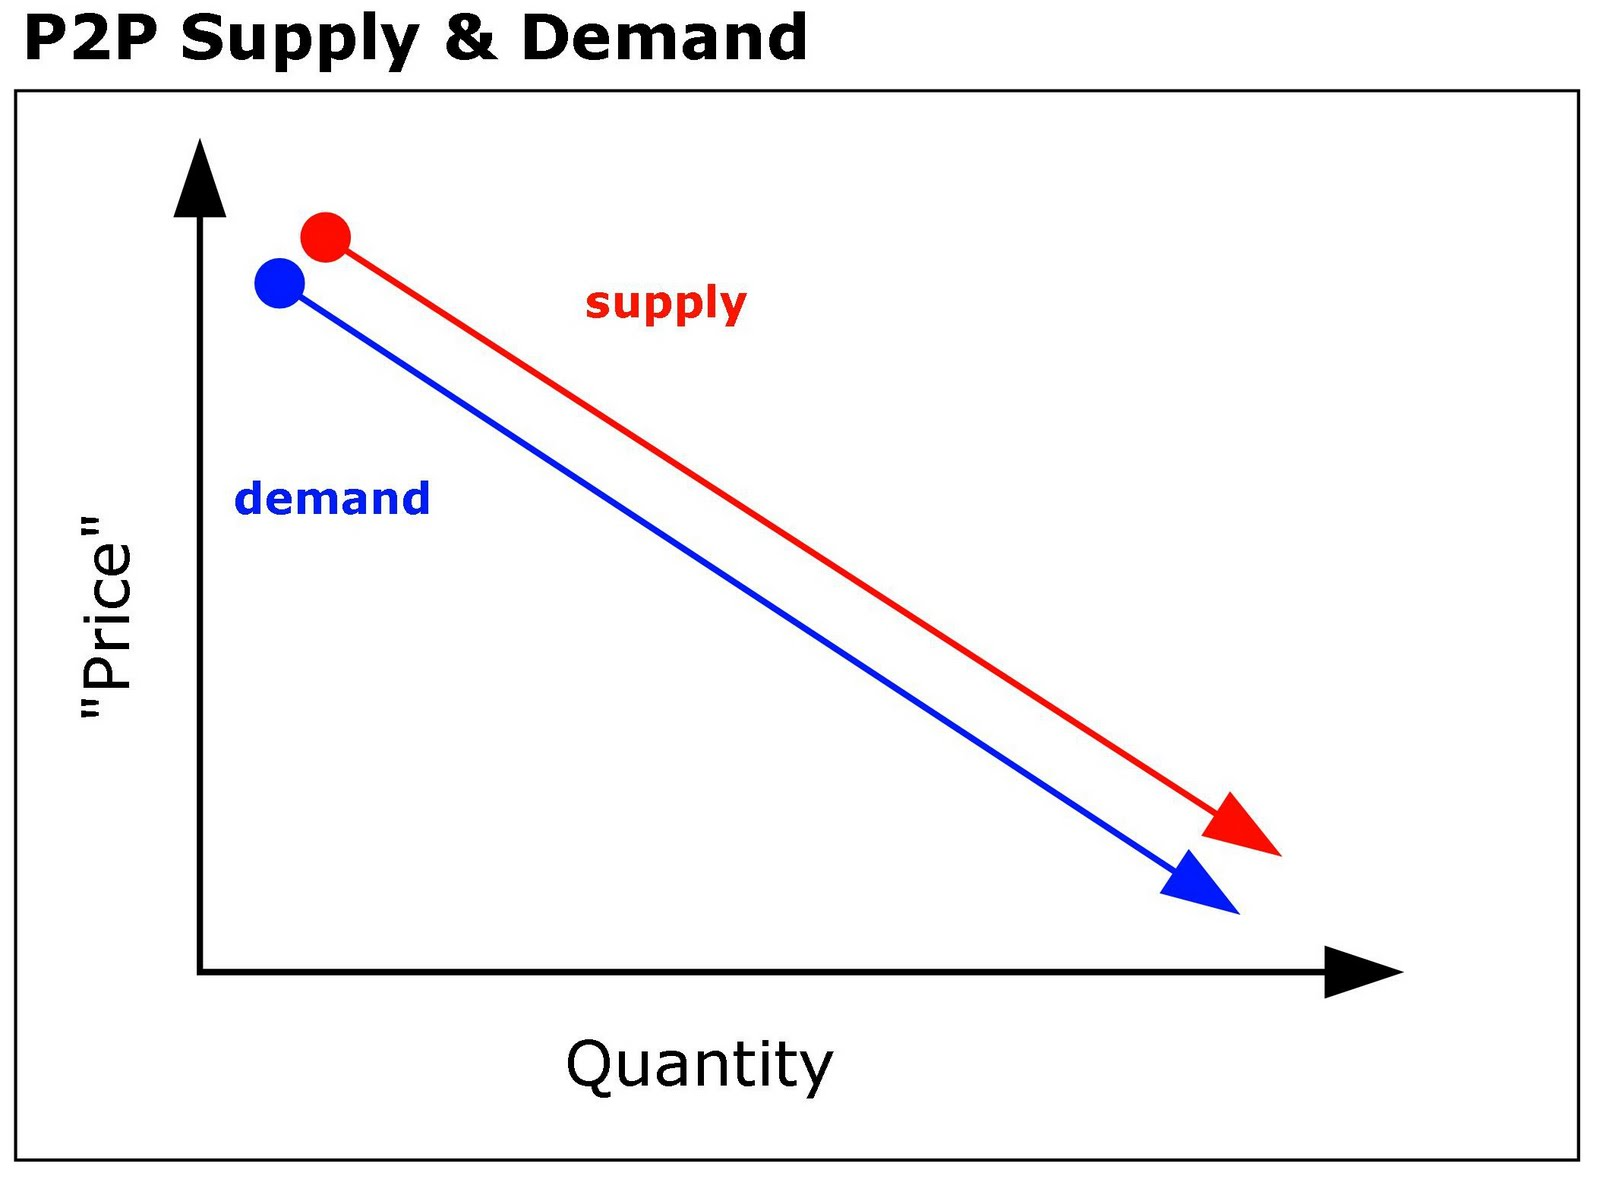 supply and demand and barr s Econ 101: principles of microeconomics ch 3: supply and demand: a model of a competitive market fall 2010 herriges (isu) chapter 3: supply and demand fall 2010 1 / 37.